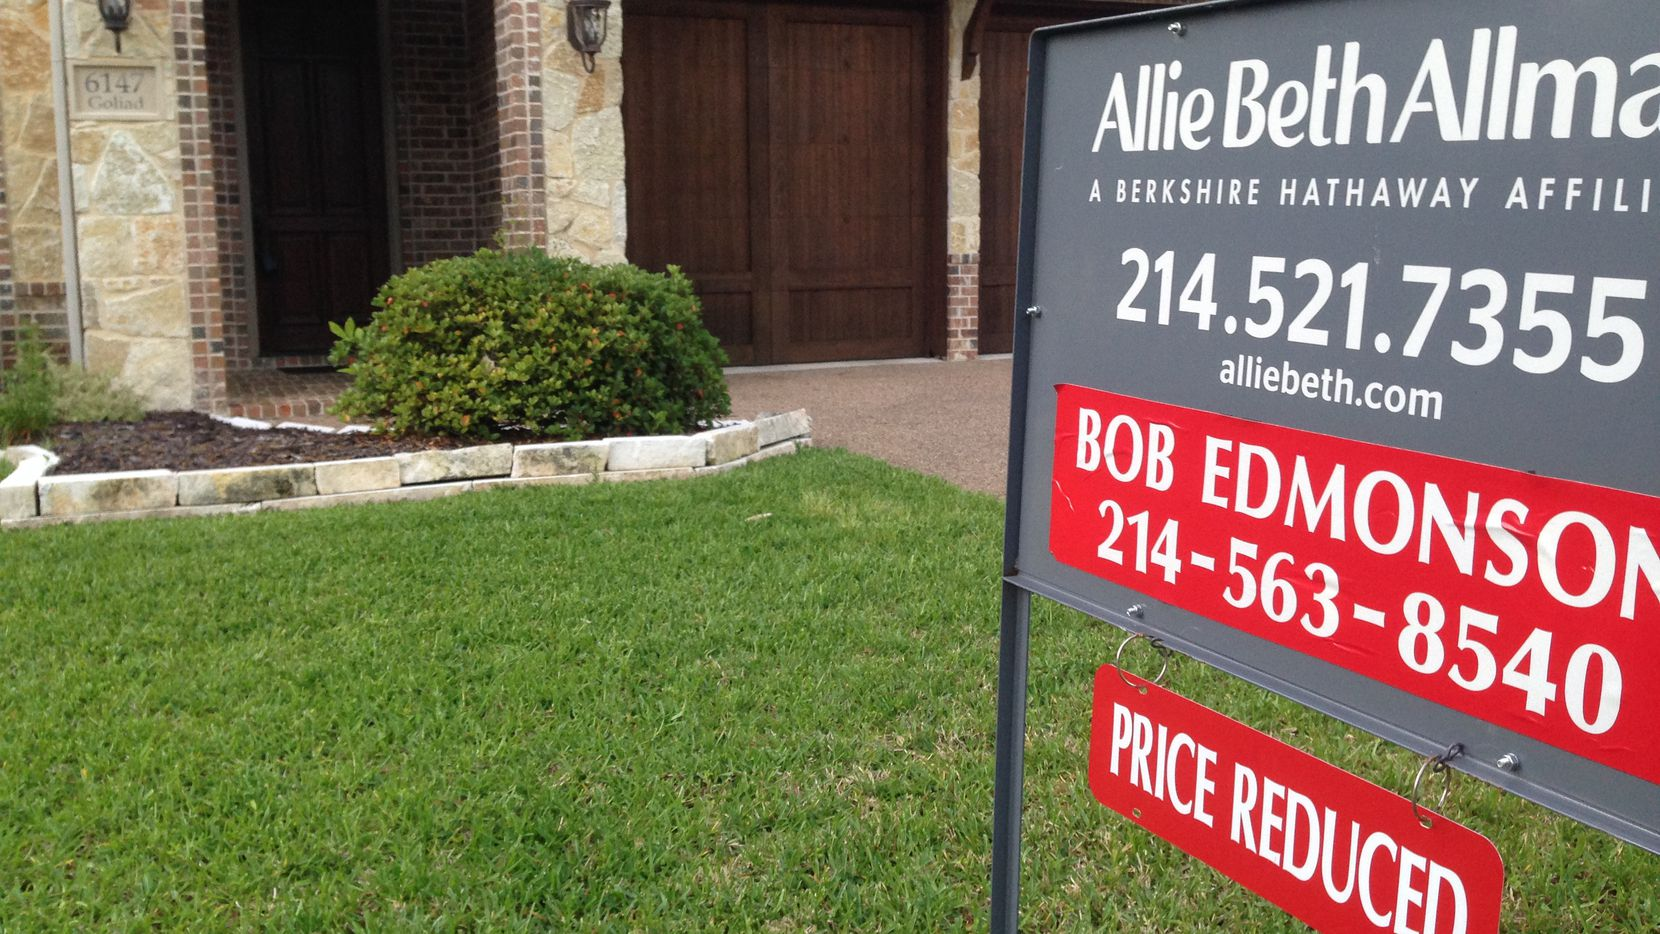 Dallas-Fort Worth home prices are overvalued by 10% to 14%, Fitch Ratings estimates.